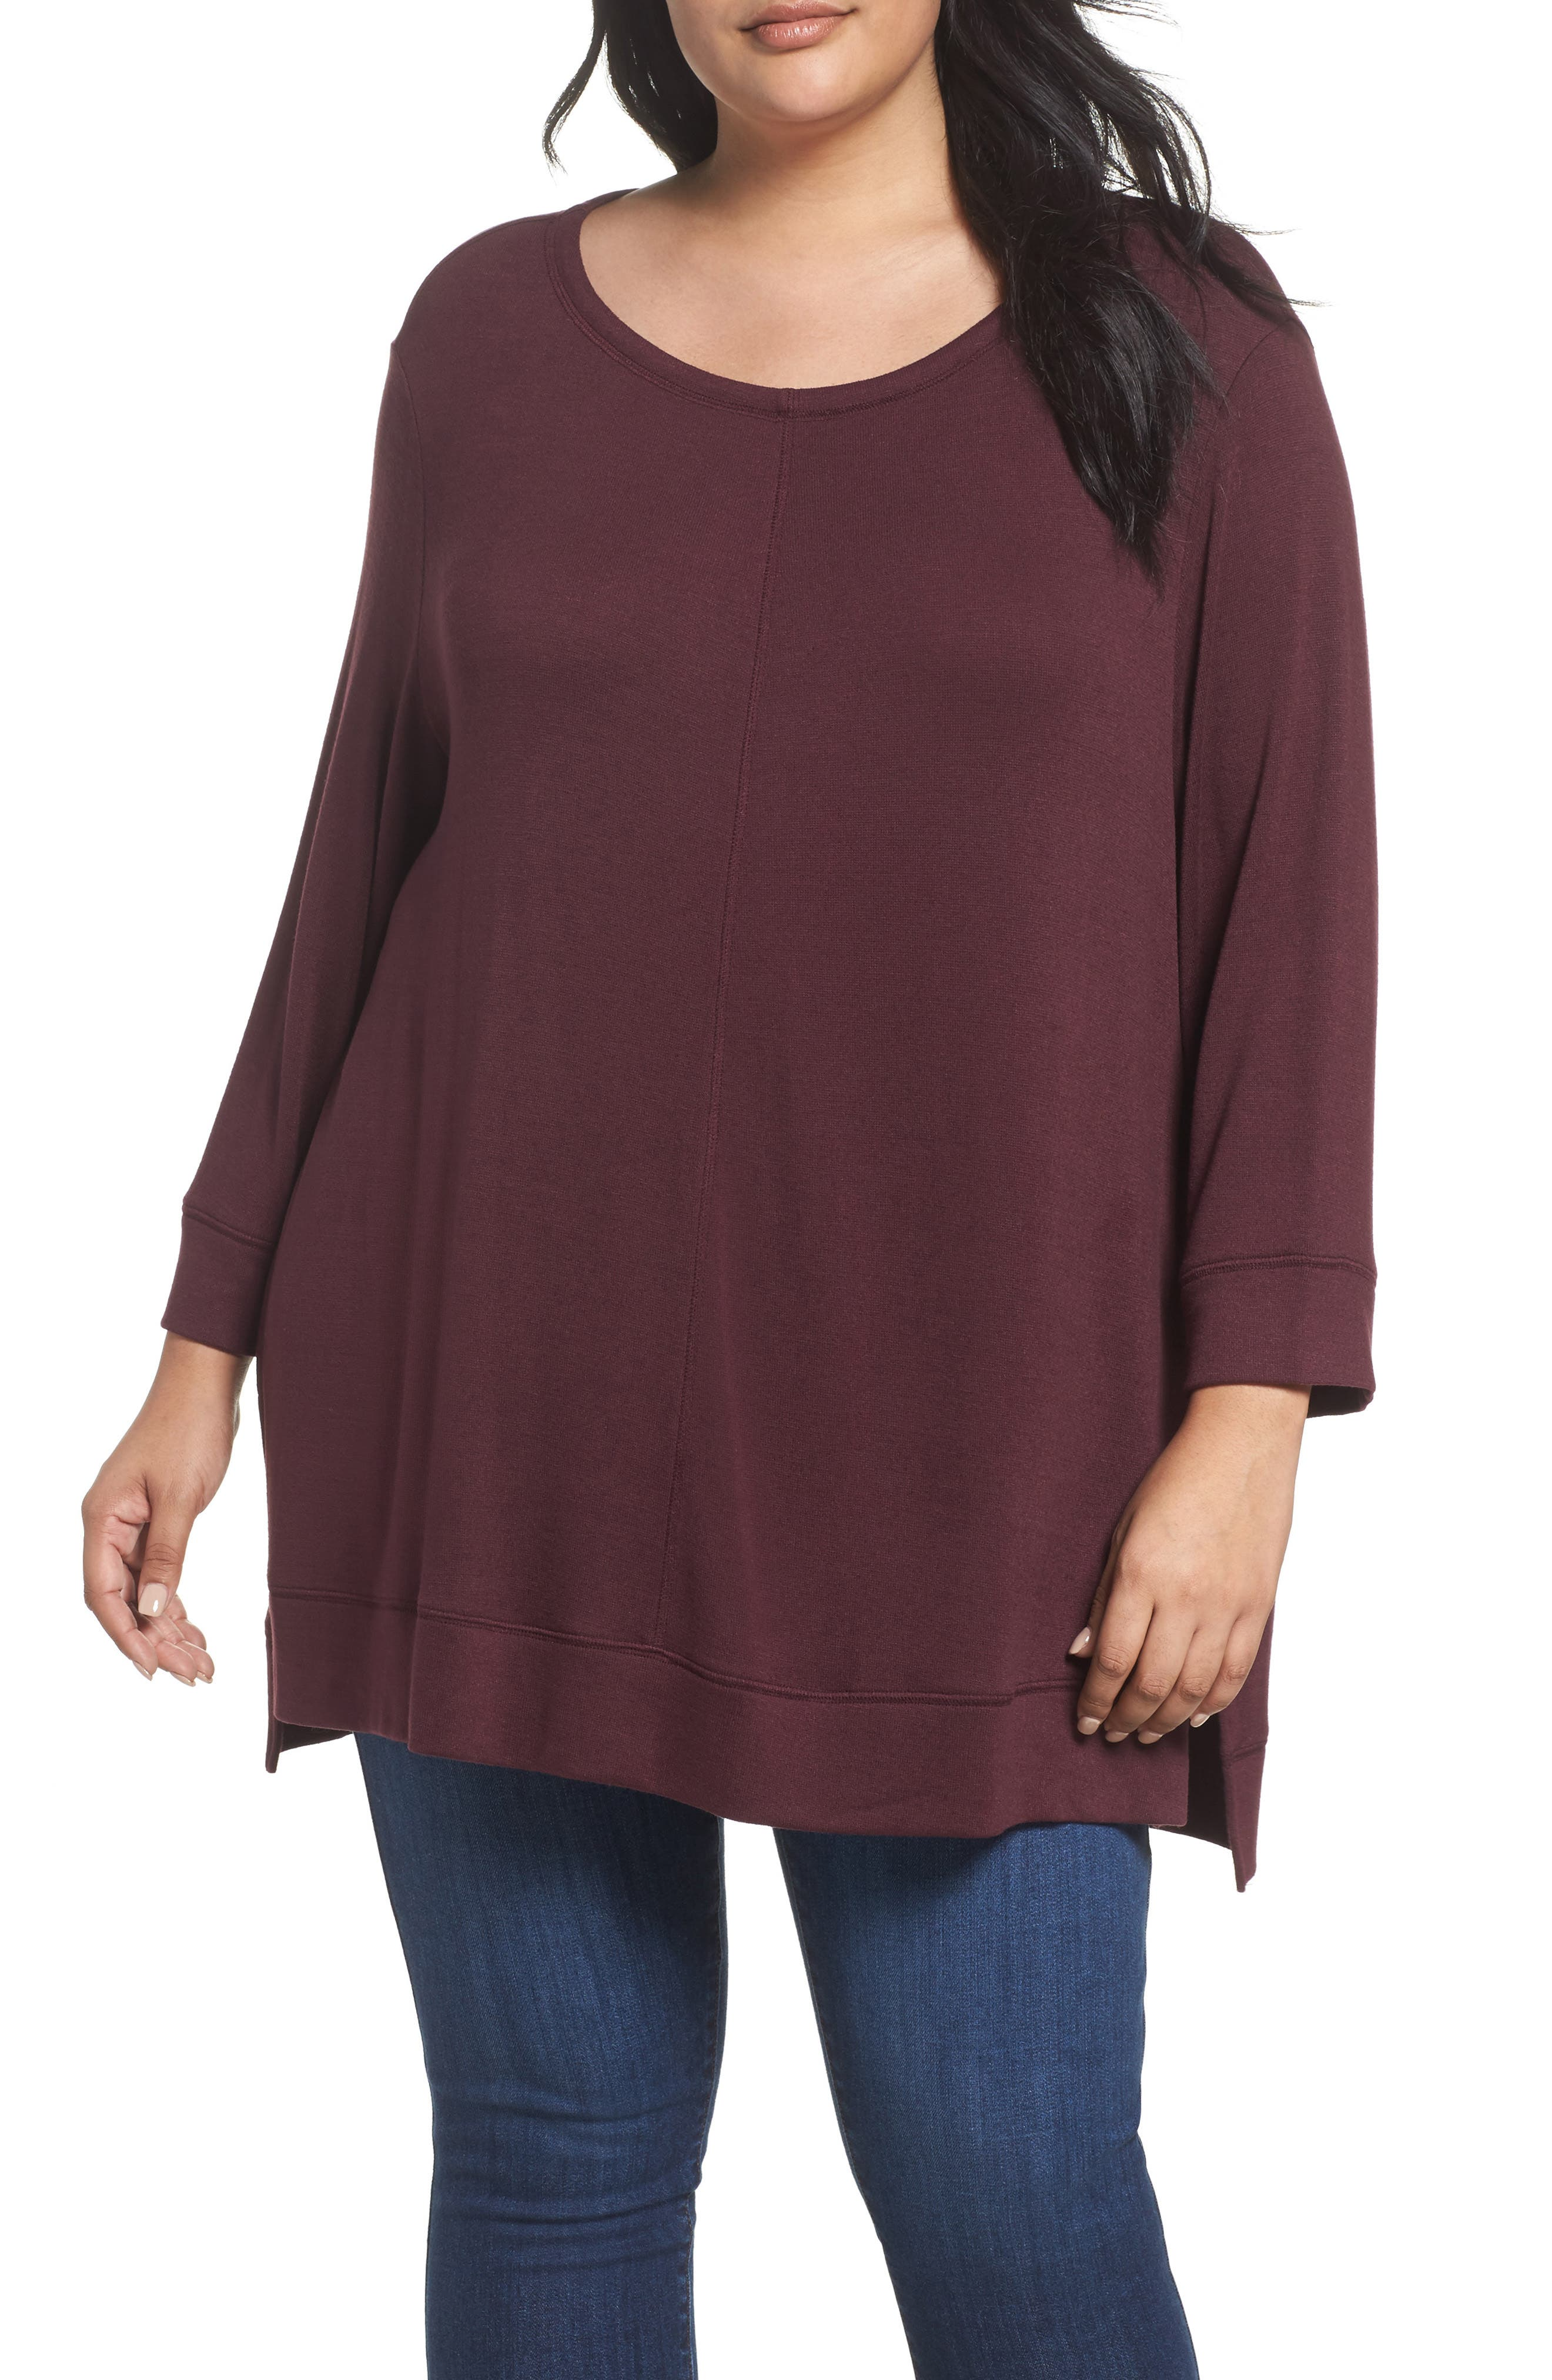 Caslon® Three Quarter Sleeve Modal Blend Knit Top (Plus Size)